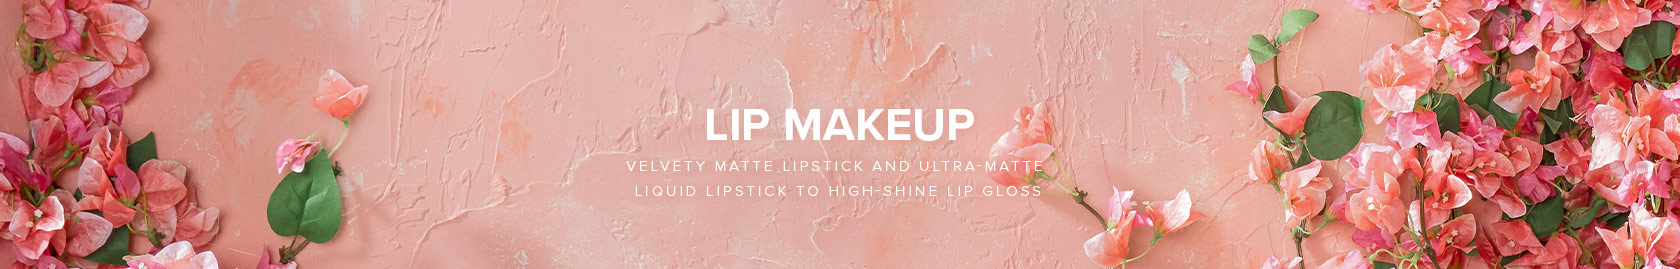 Lip Makeup - Velvety Matte Lipstick and Ultra Matte Liquid Lipstick to High Shine Lip Gloss